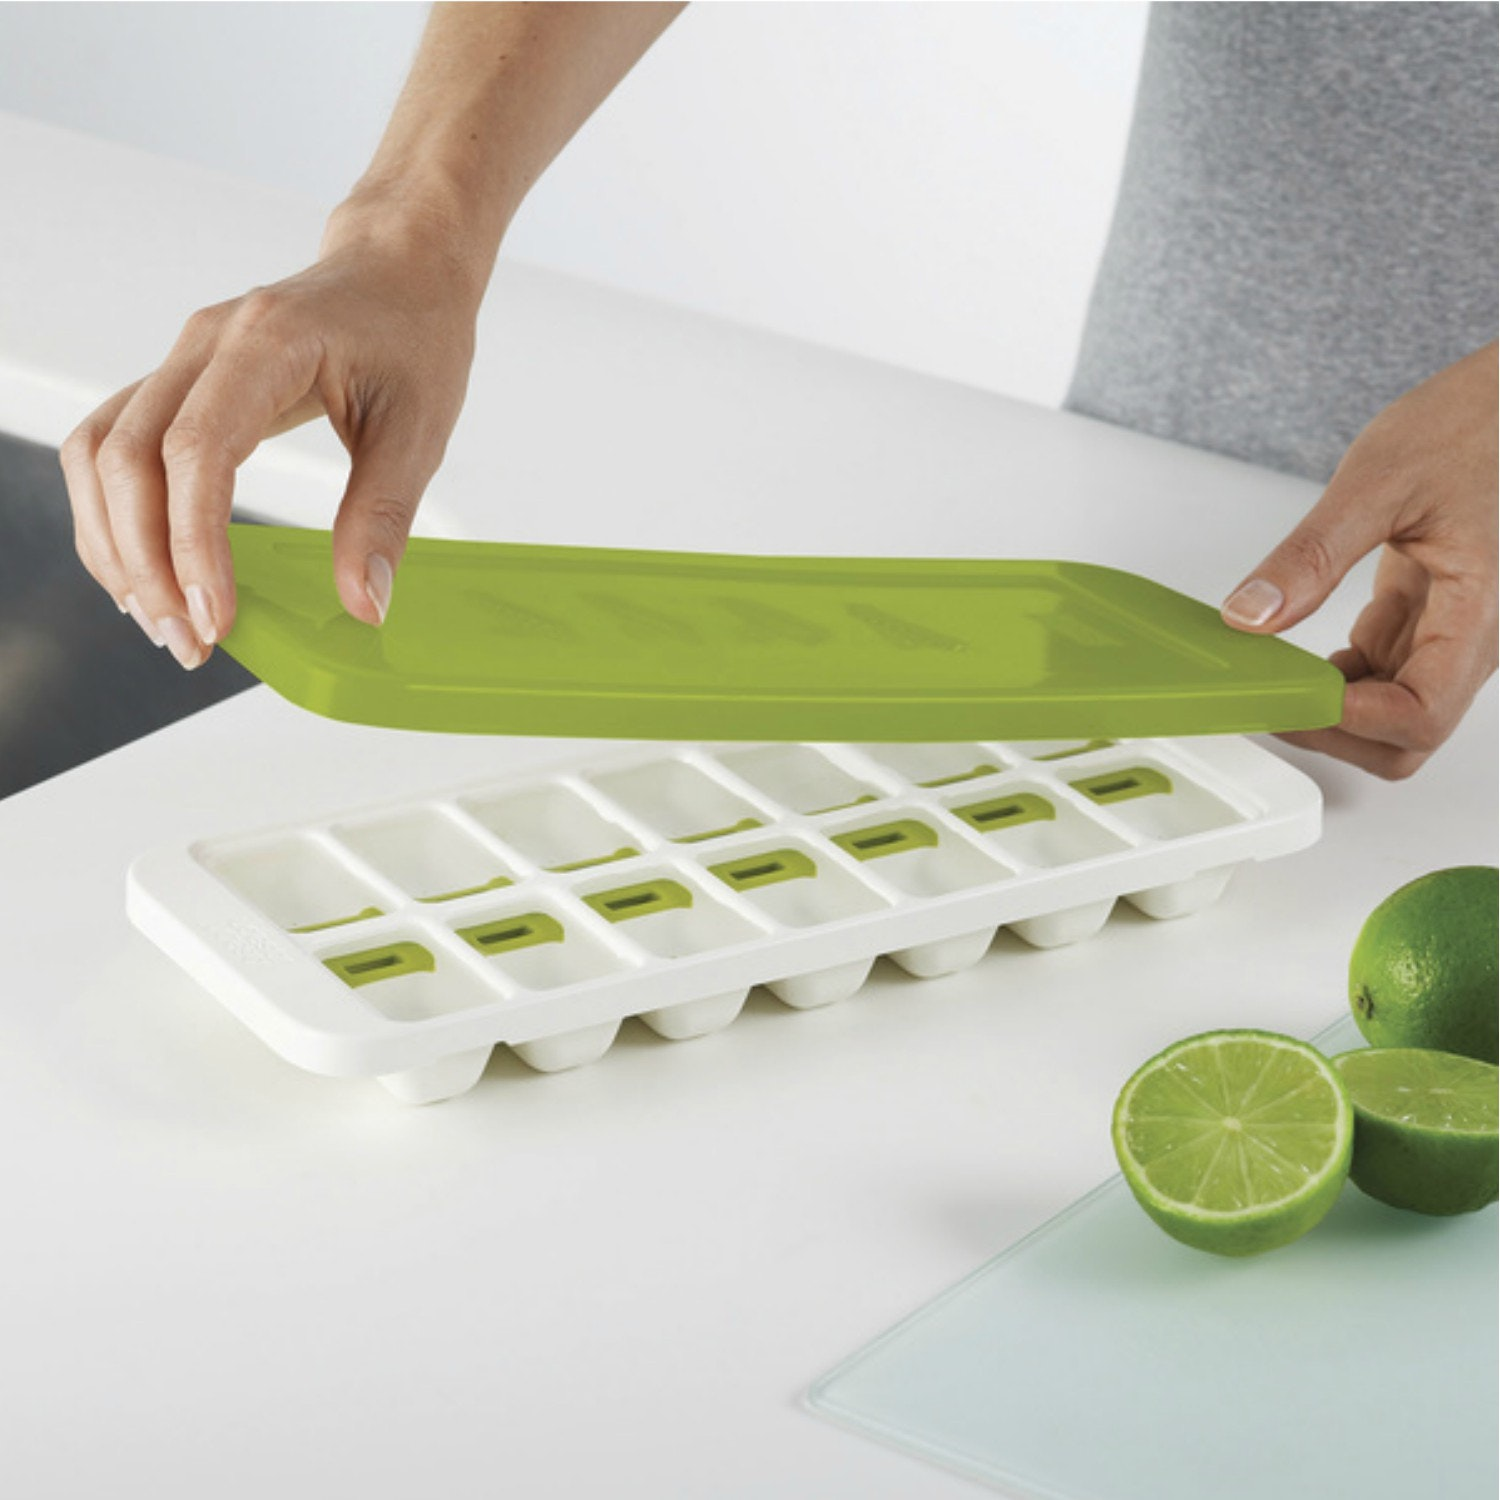 Joseph Joseph QuickSnap Plus Ice Cube Tray